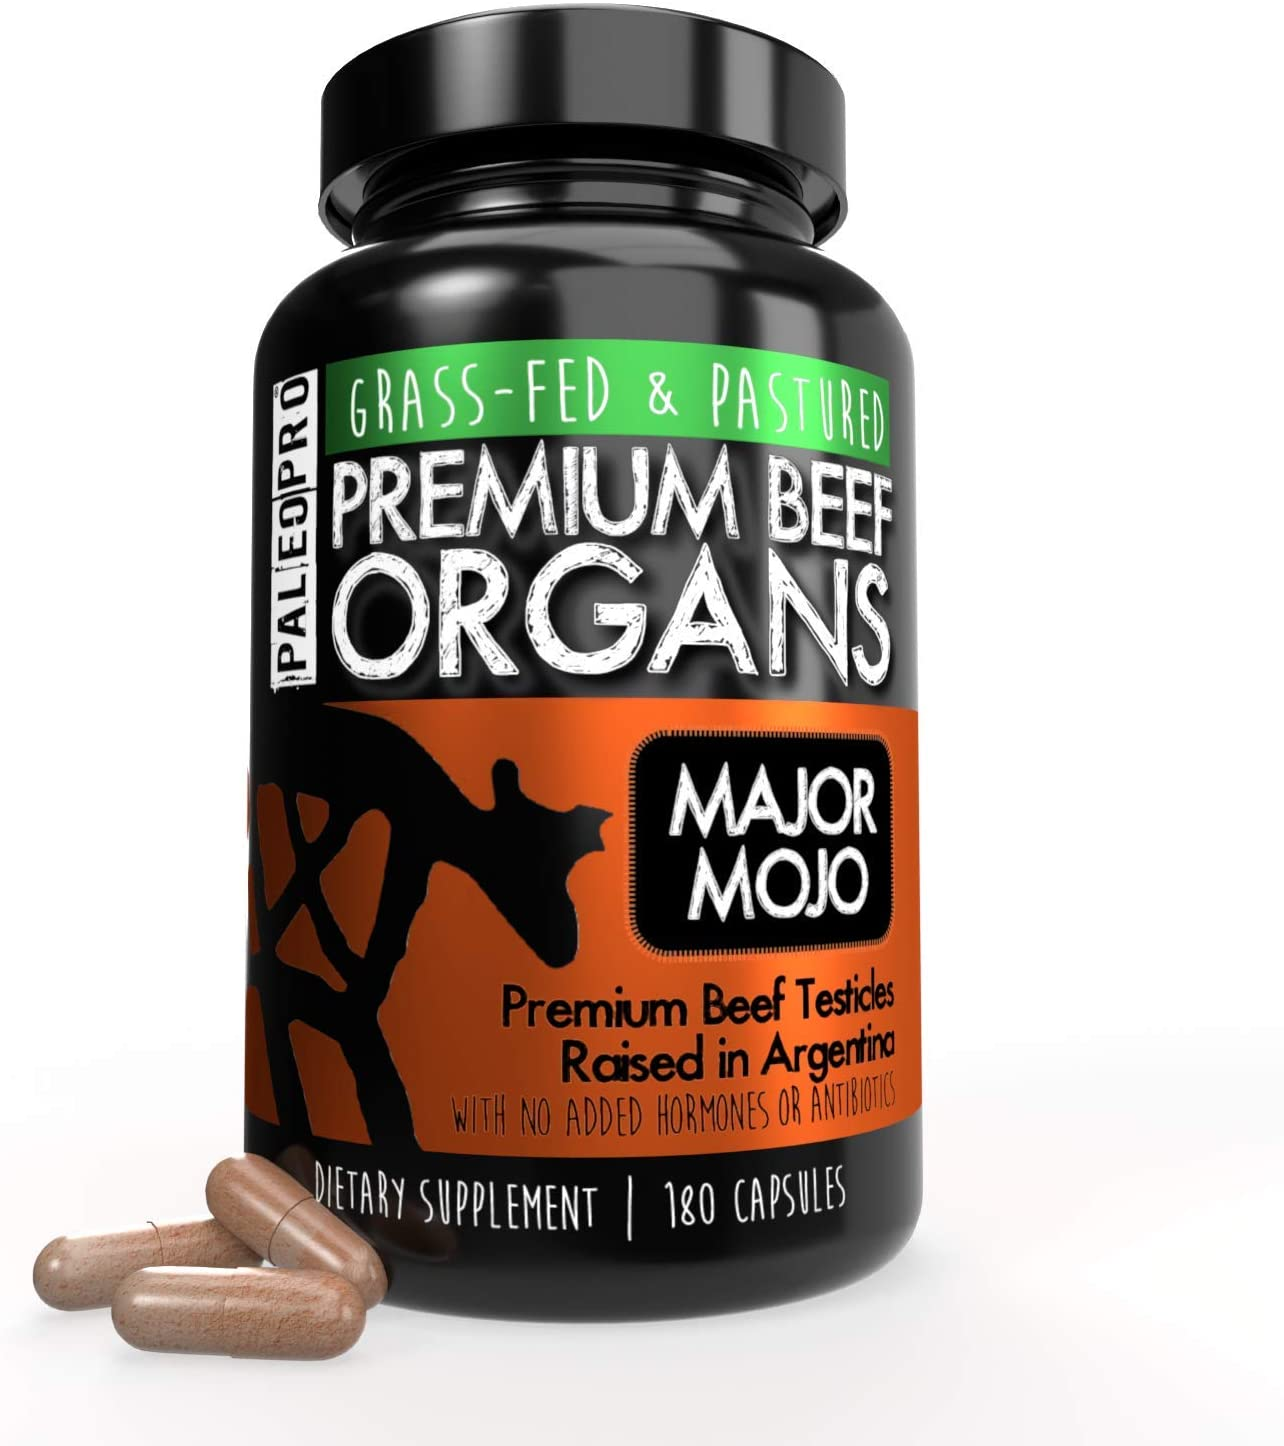 Paleo Pro Major Mojo Premium Beef Organs Capsules, Beef Testicles from Grass Fed and Pastured Argentinian Cows, Dietary Supplement, No Added Hormones or Antibiotics, 180 Capsules